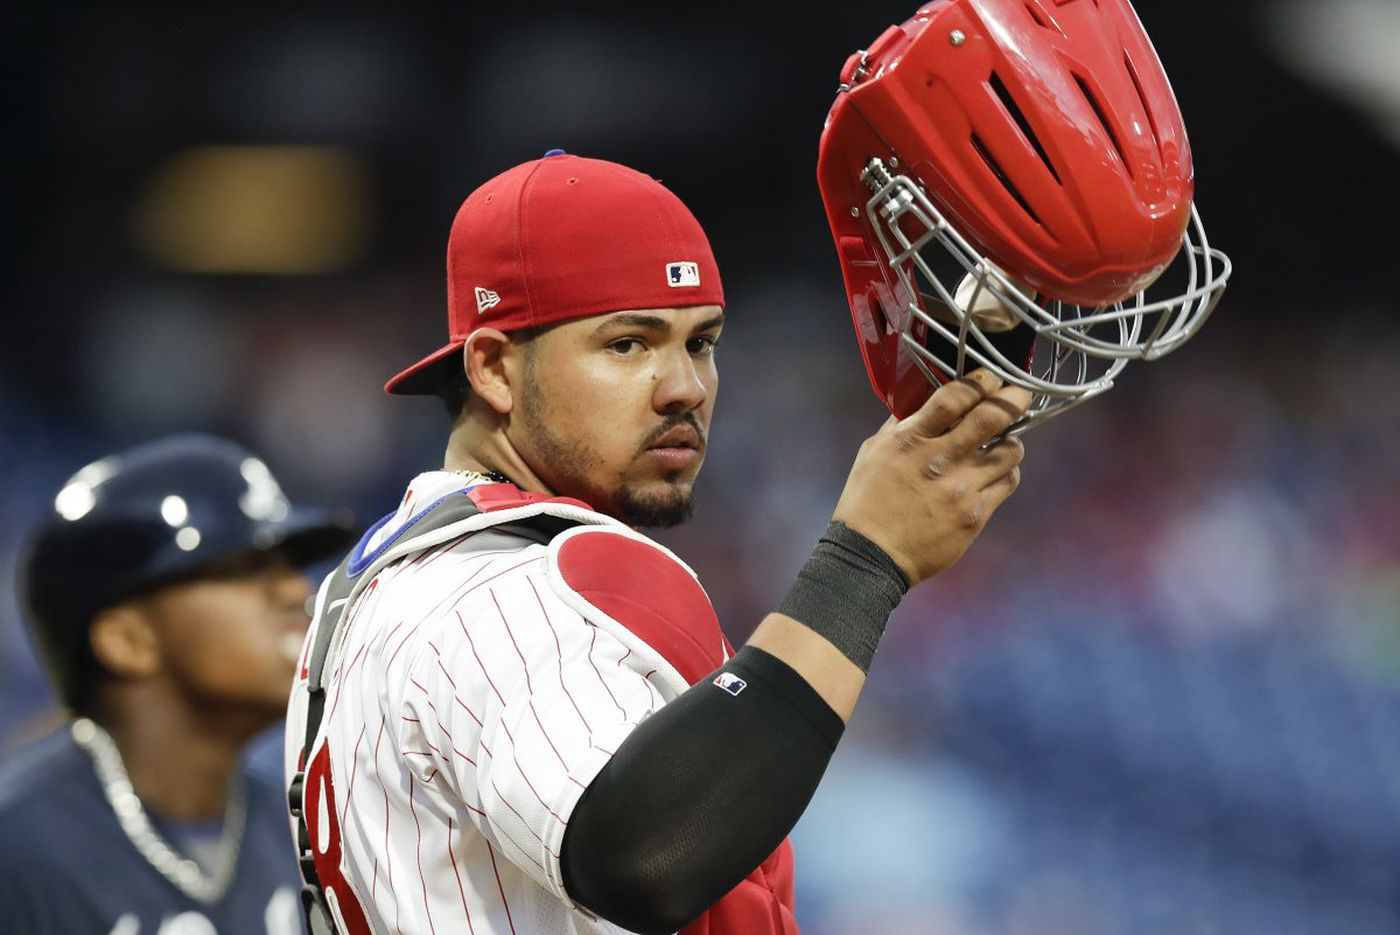 Jorge Alfaro's strong arm overshadowed in Phillies loss | Extra Innings